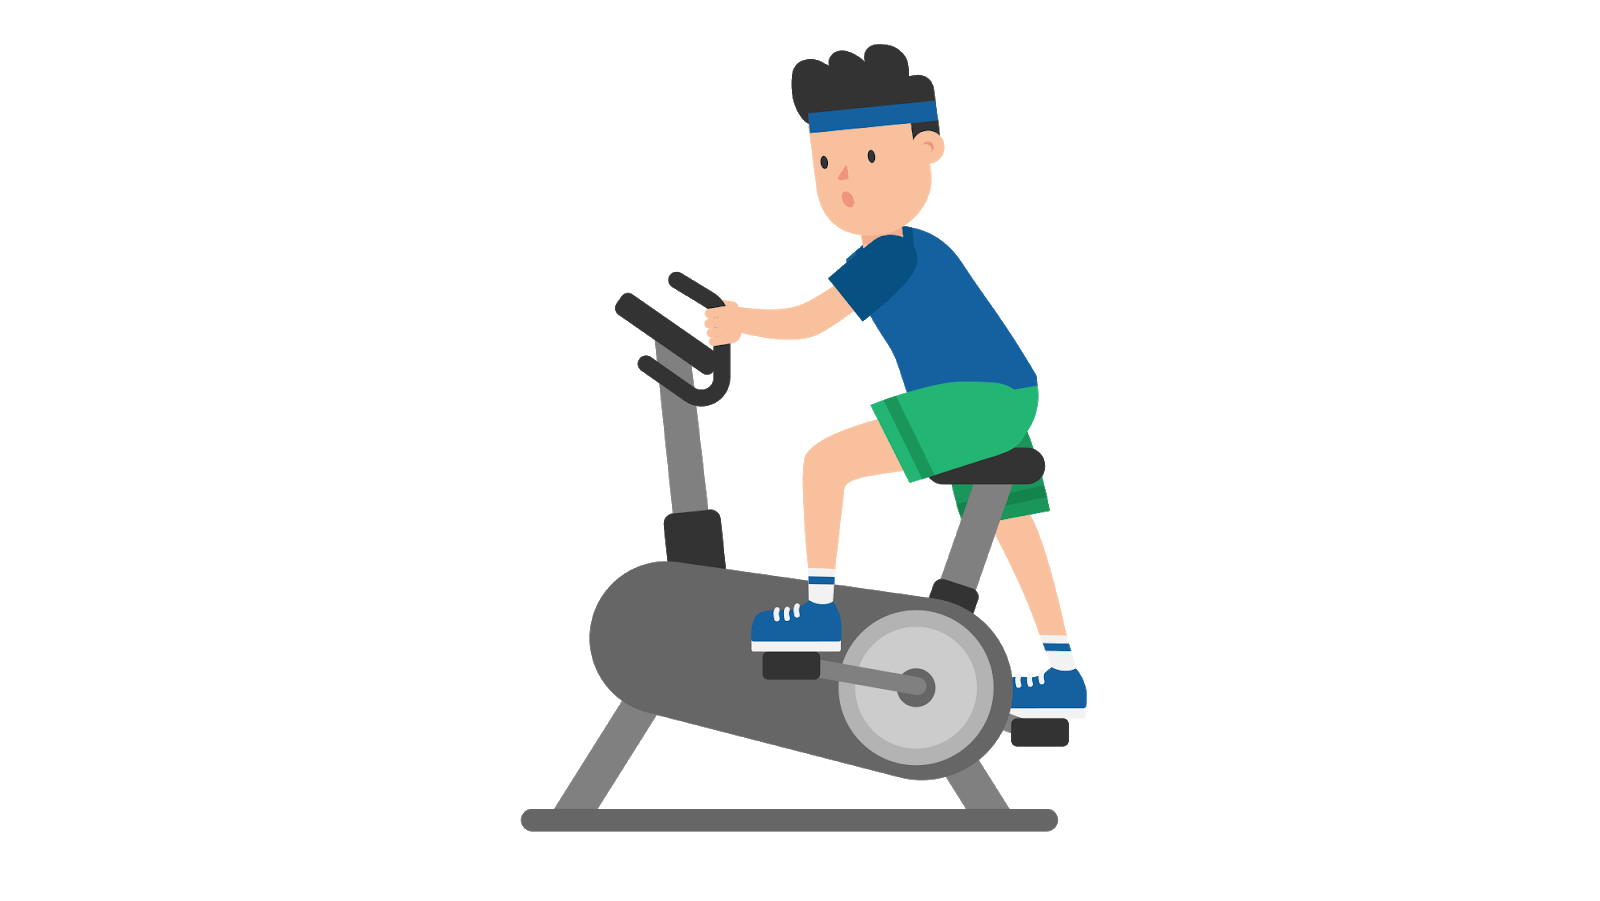 hight resolution of gym clipart exercise machine